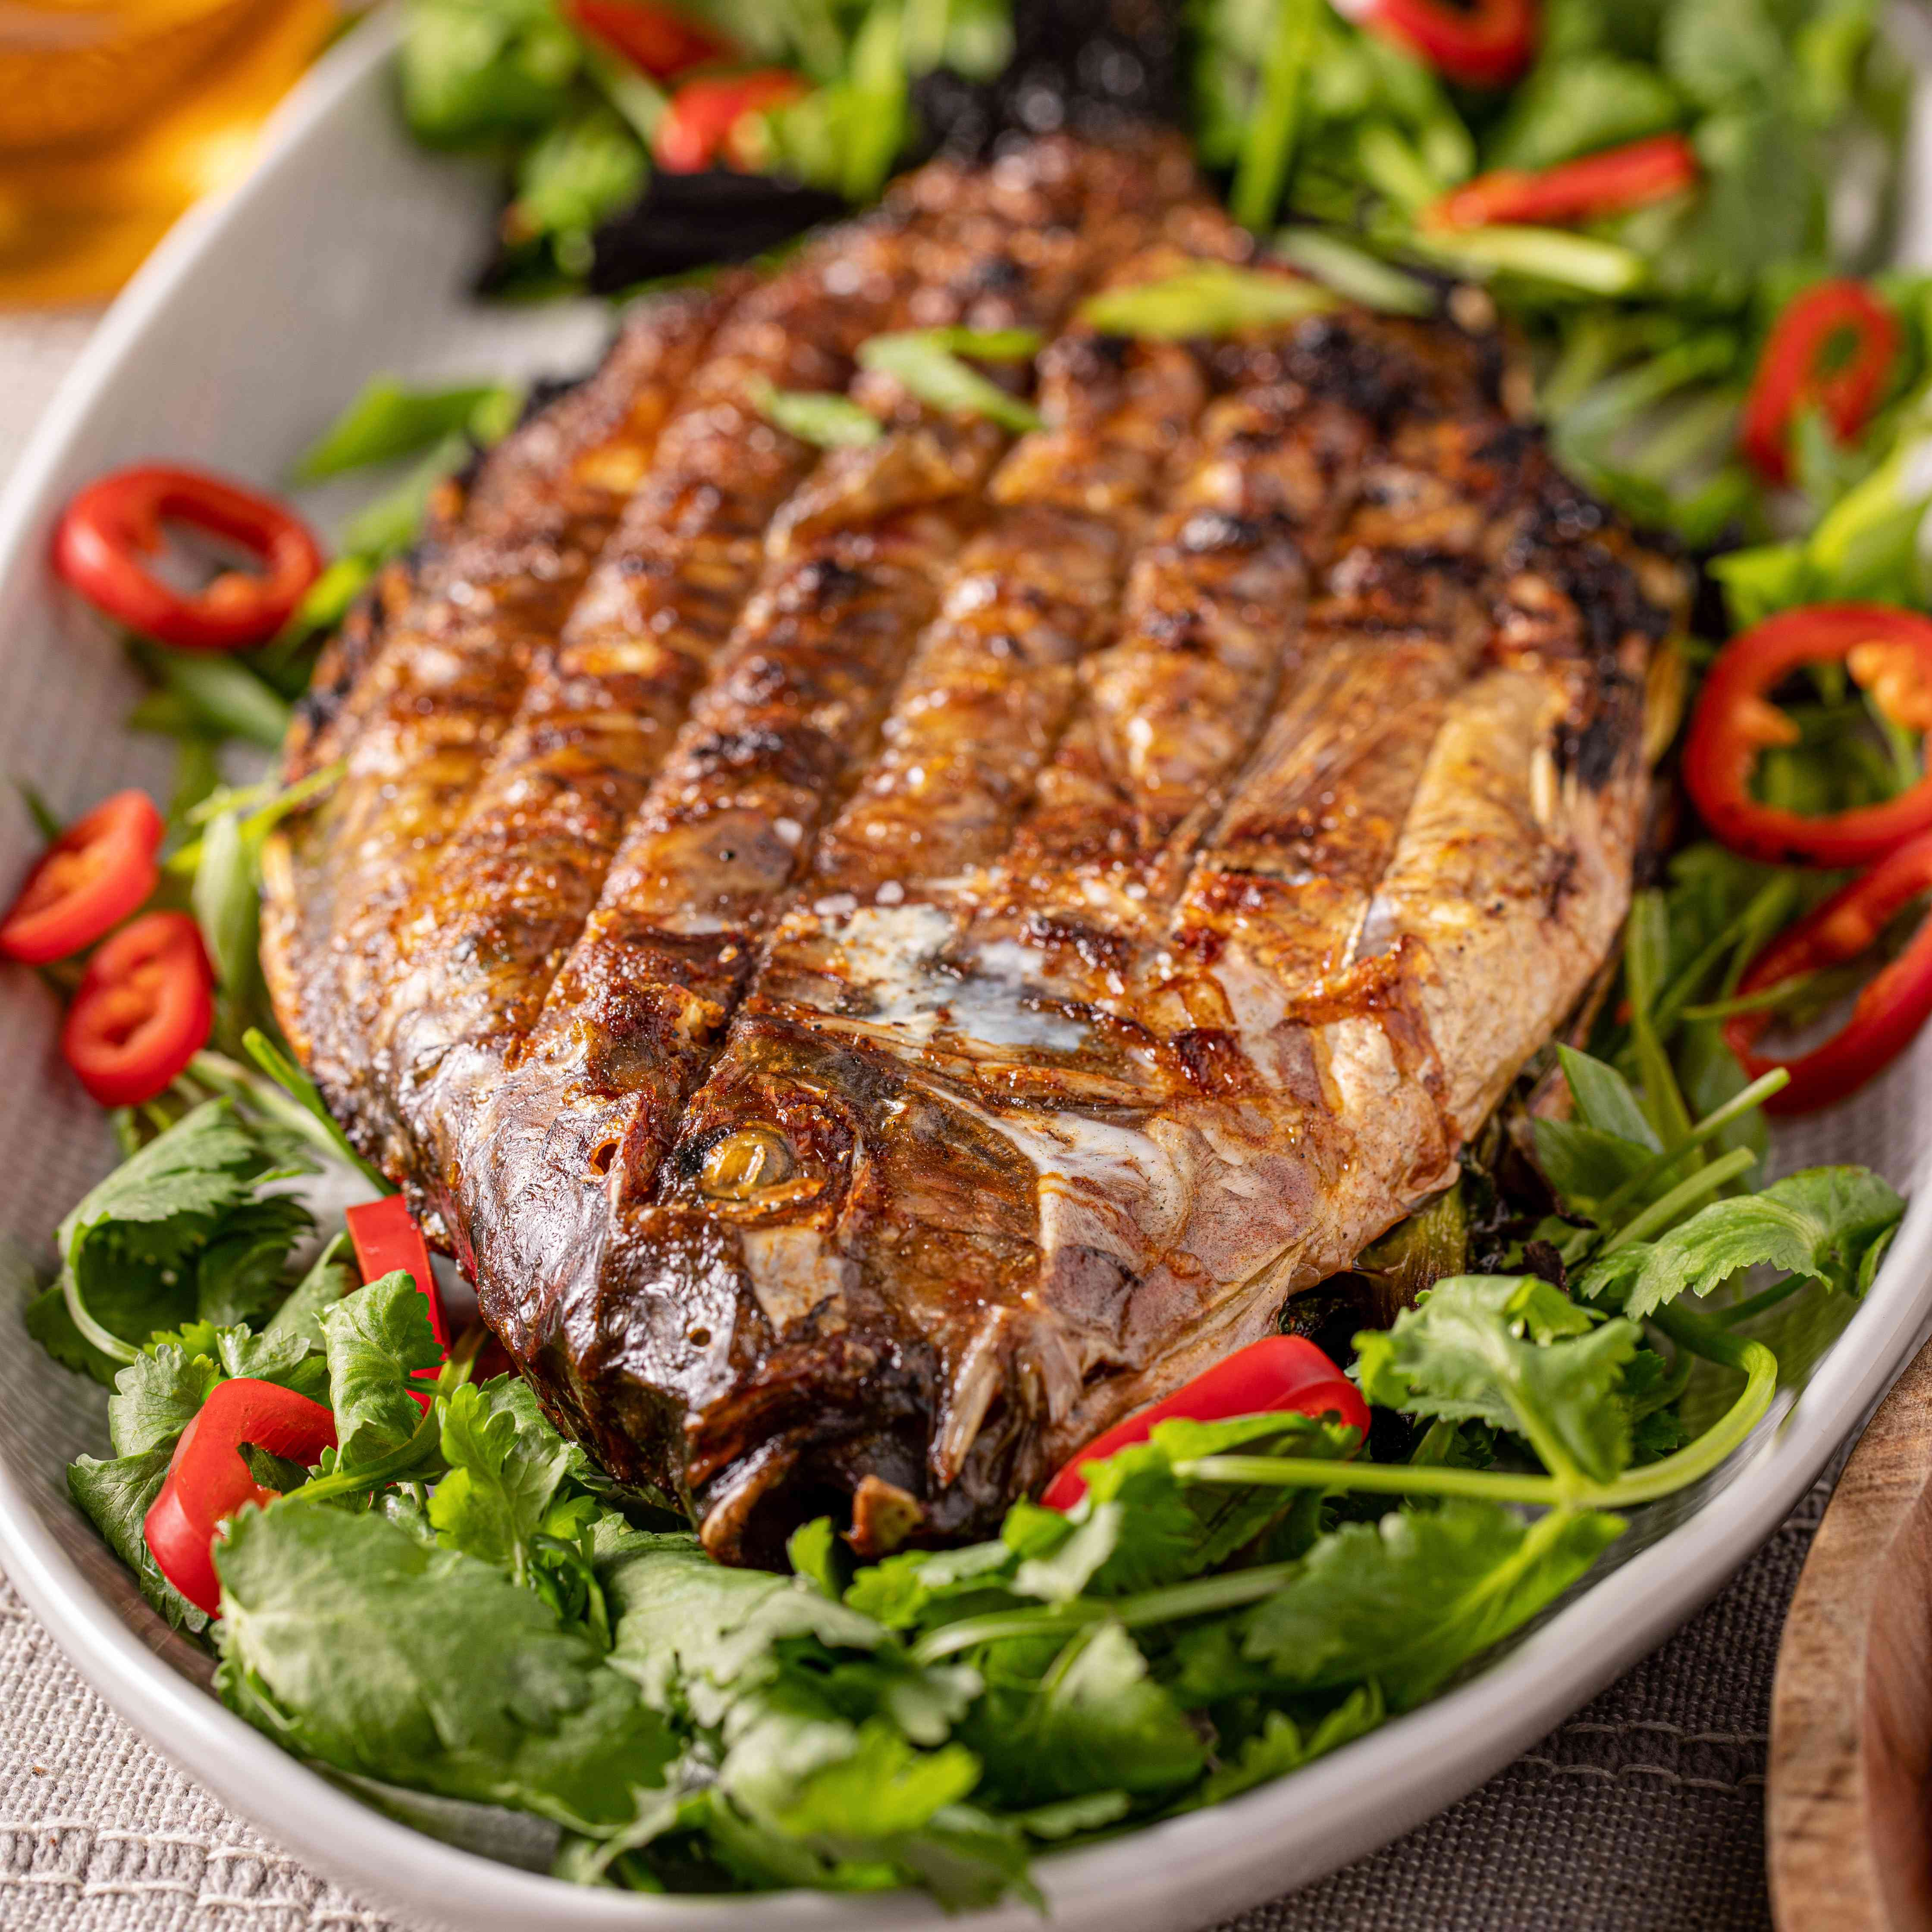 Whole fish stuffed with herbs and chilies served on a bed of lettuce.